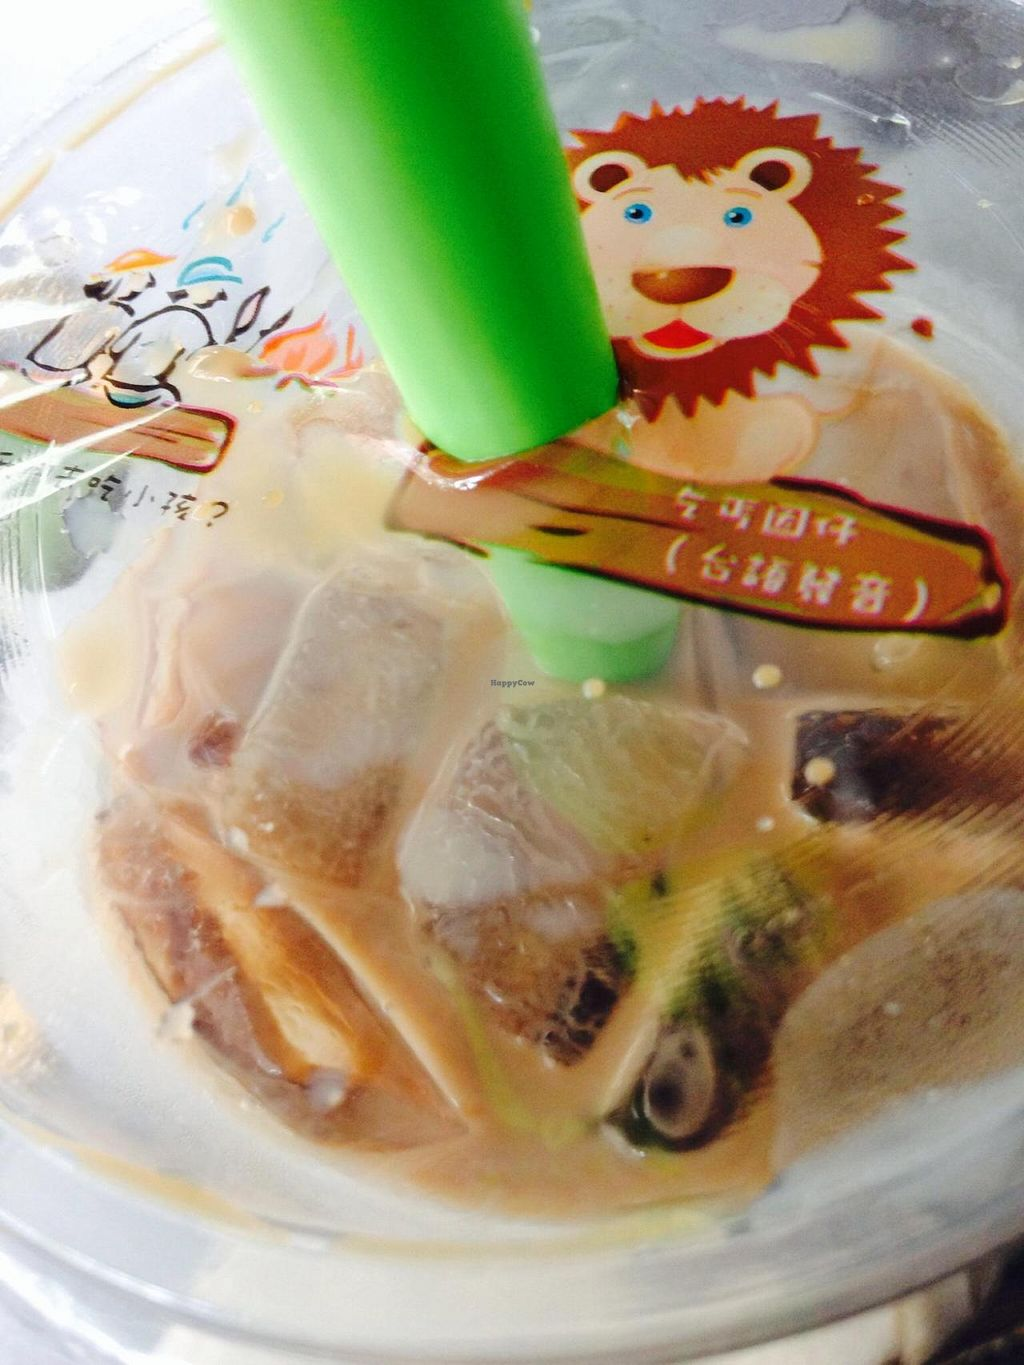 """Photo of Simply Banh Mi  by <a href=""""/members/profile/cookiem"""">cookiem</a> <br/>Vegan black tea boba <br/> July 17, 2014  - <a href='/contact/abuse/image/48980/74279'>Report</a>"""